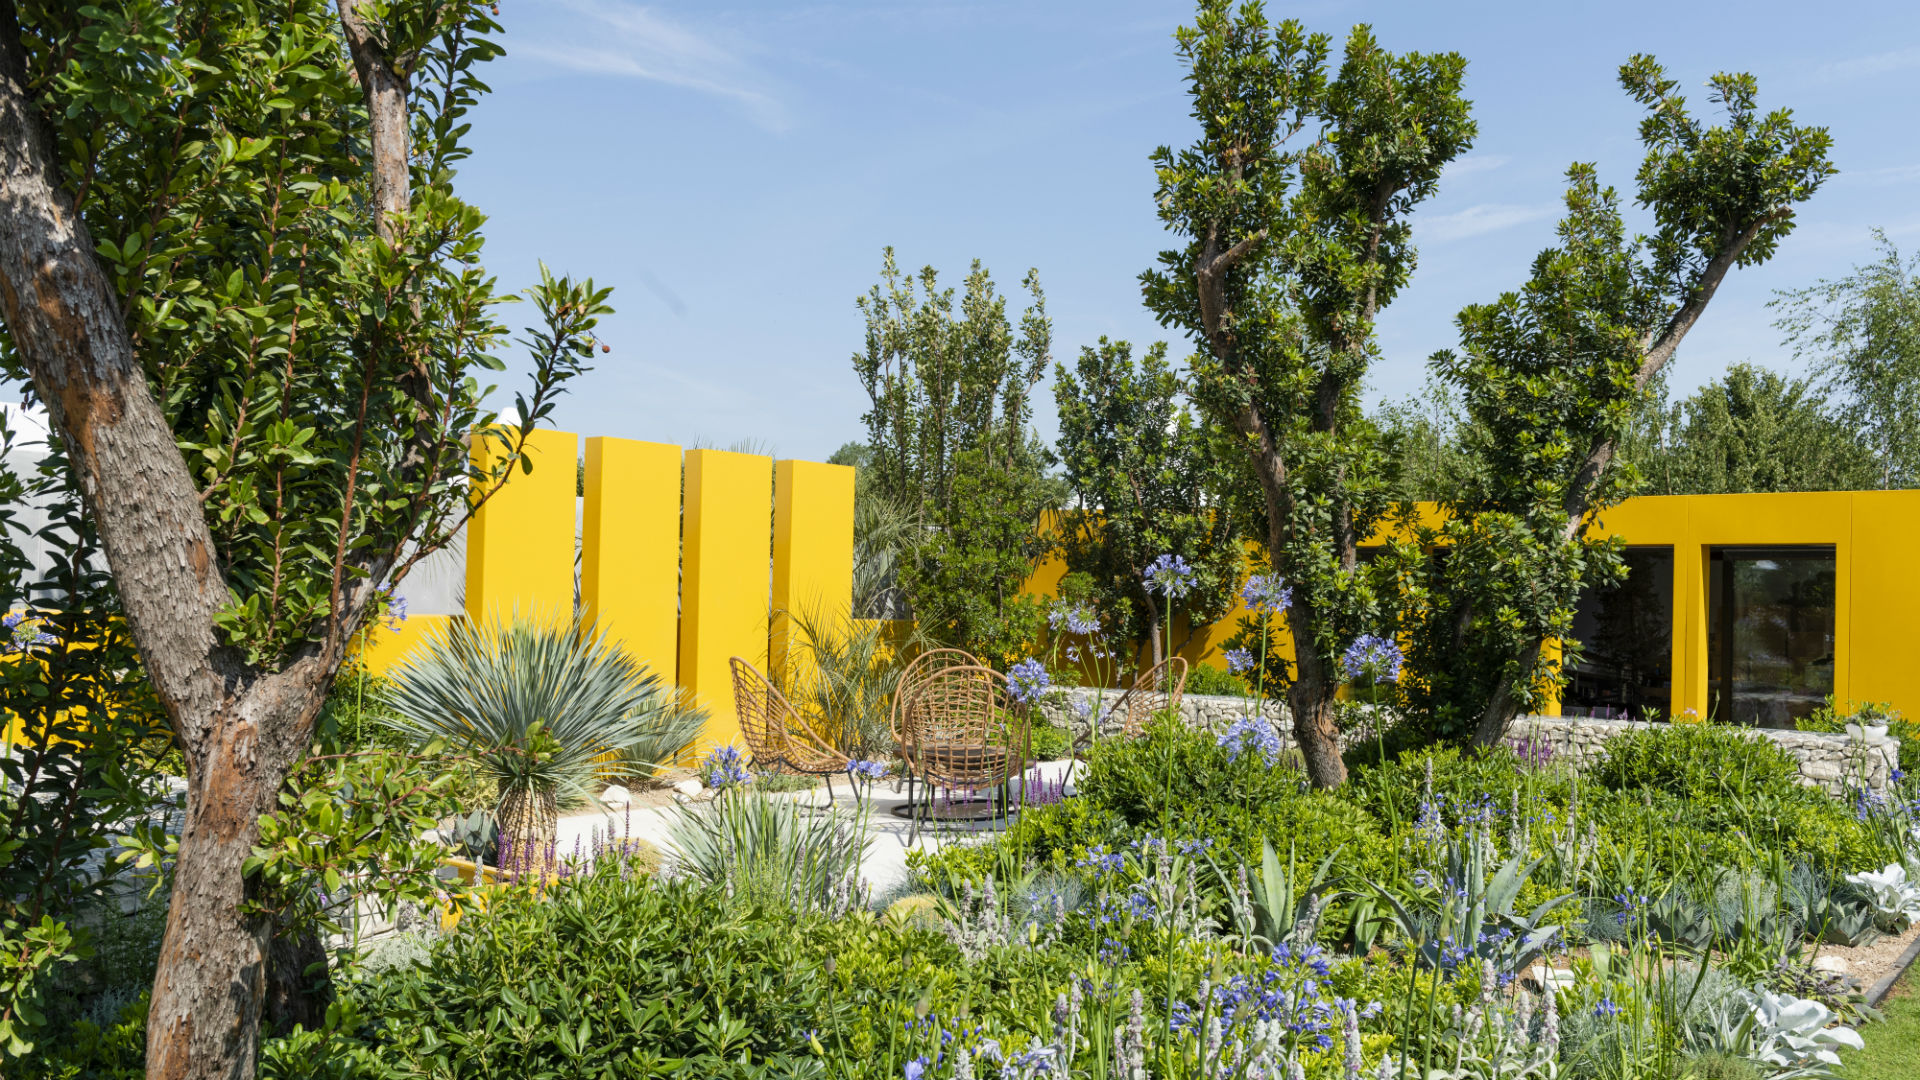 Rhs Hampton Court Palace Flower Show Santa Rita Living La Vida 120 Garden Designed By Alan Rudden Sponsored Wines